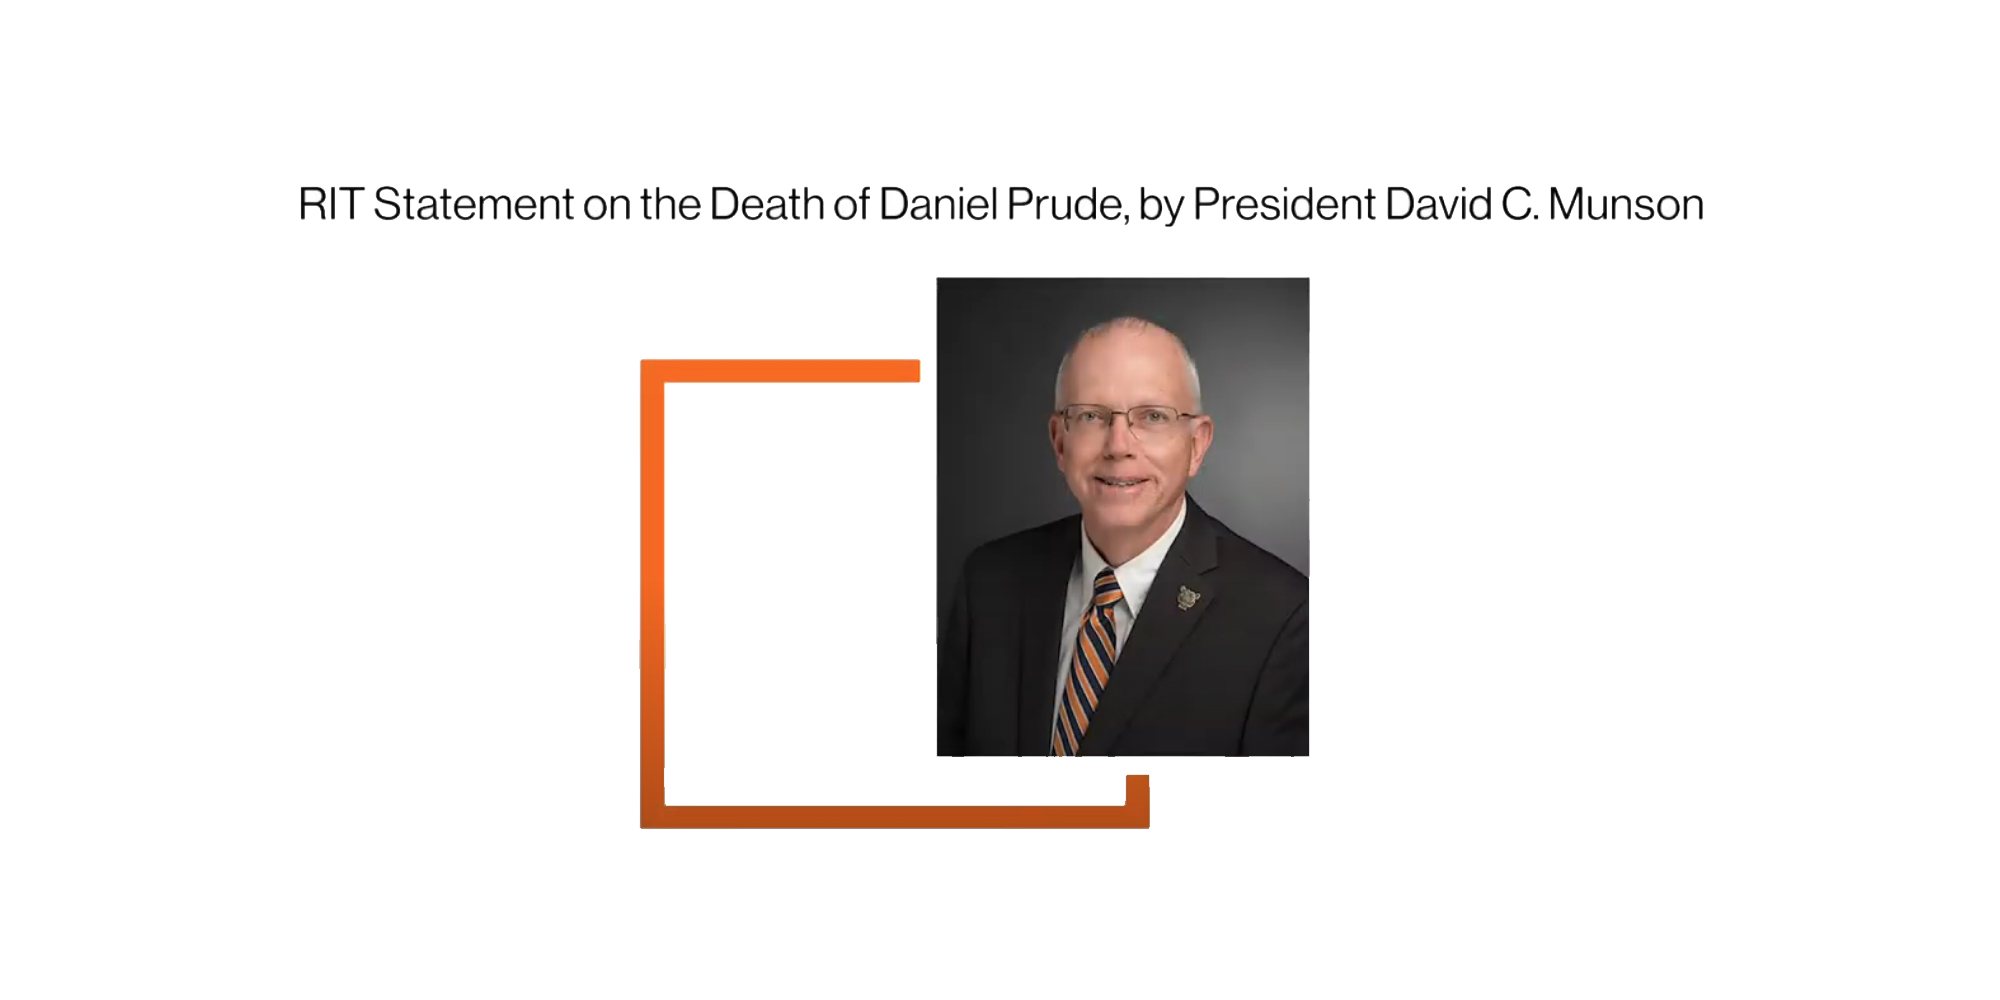 RIT Statement on the death of Daniel Prude